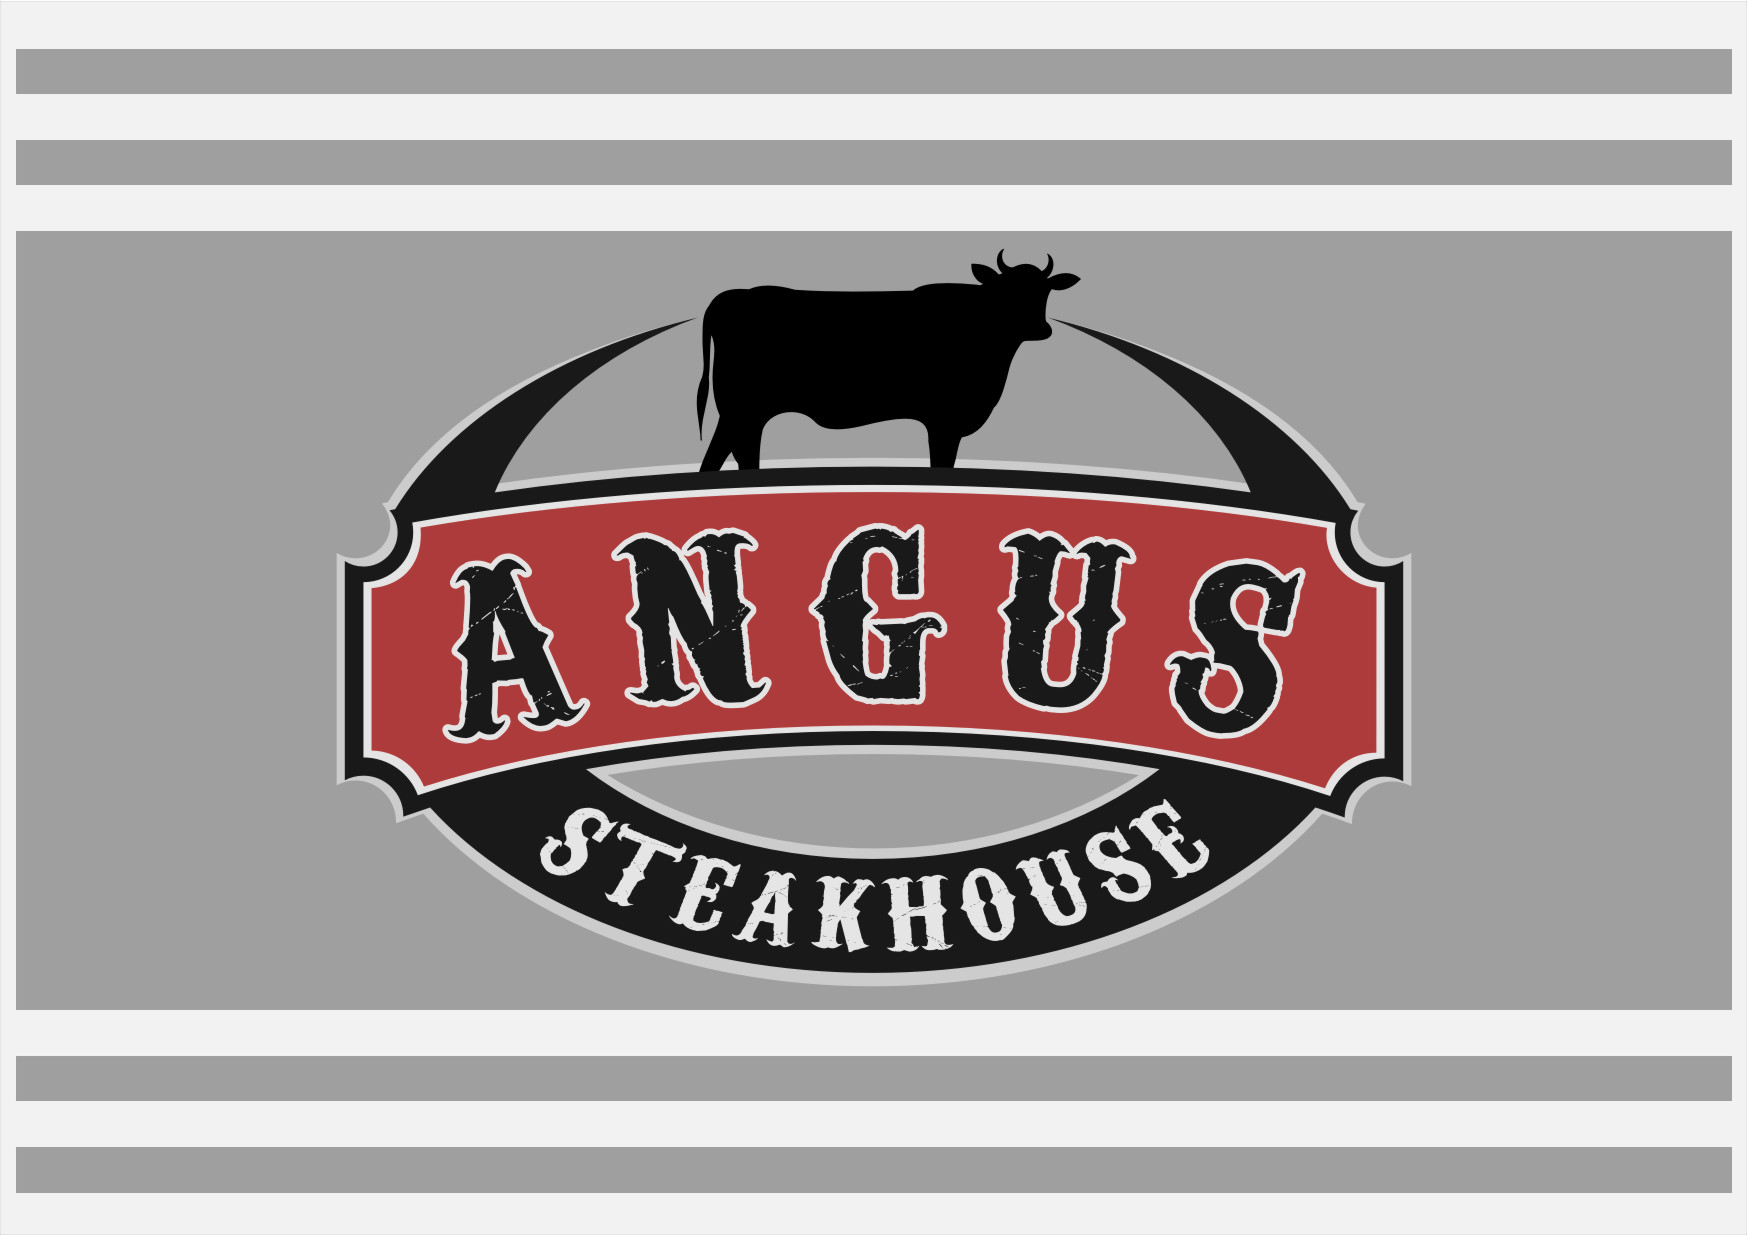 Logo Design by Ngepet_art - Entry No. 93 in the Logo Design Contest Imaginative Custom Design for Angus Steakhouse.